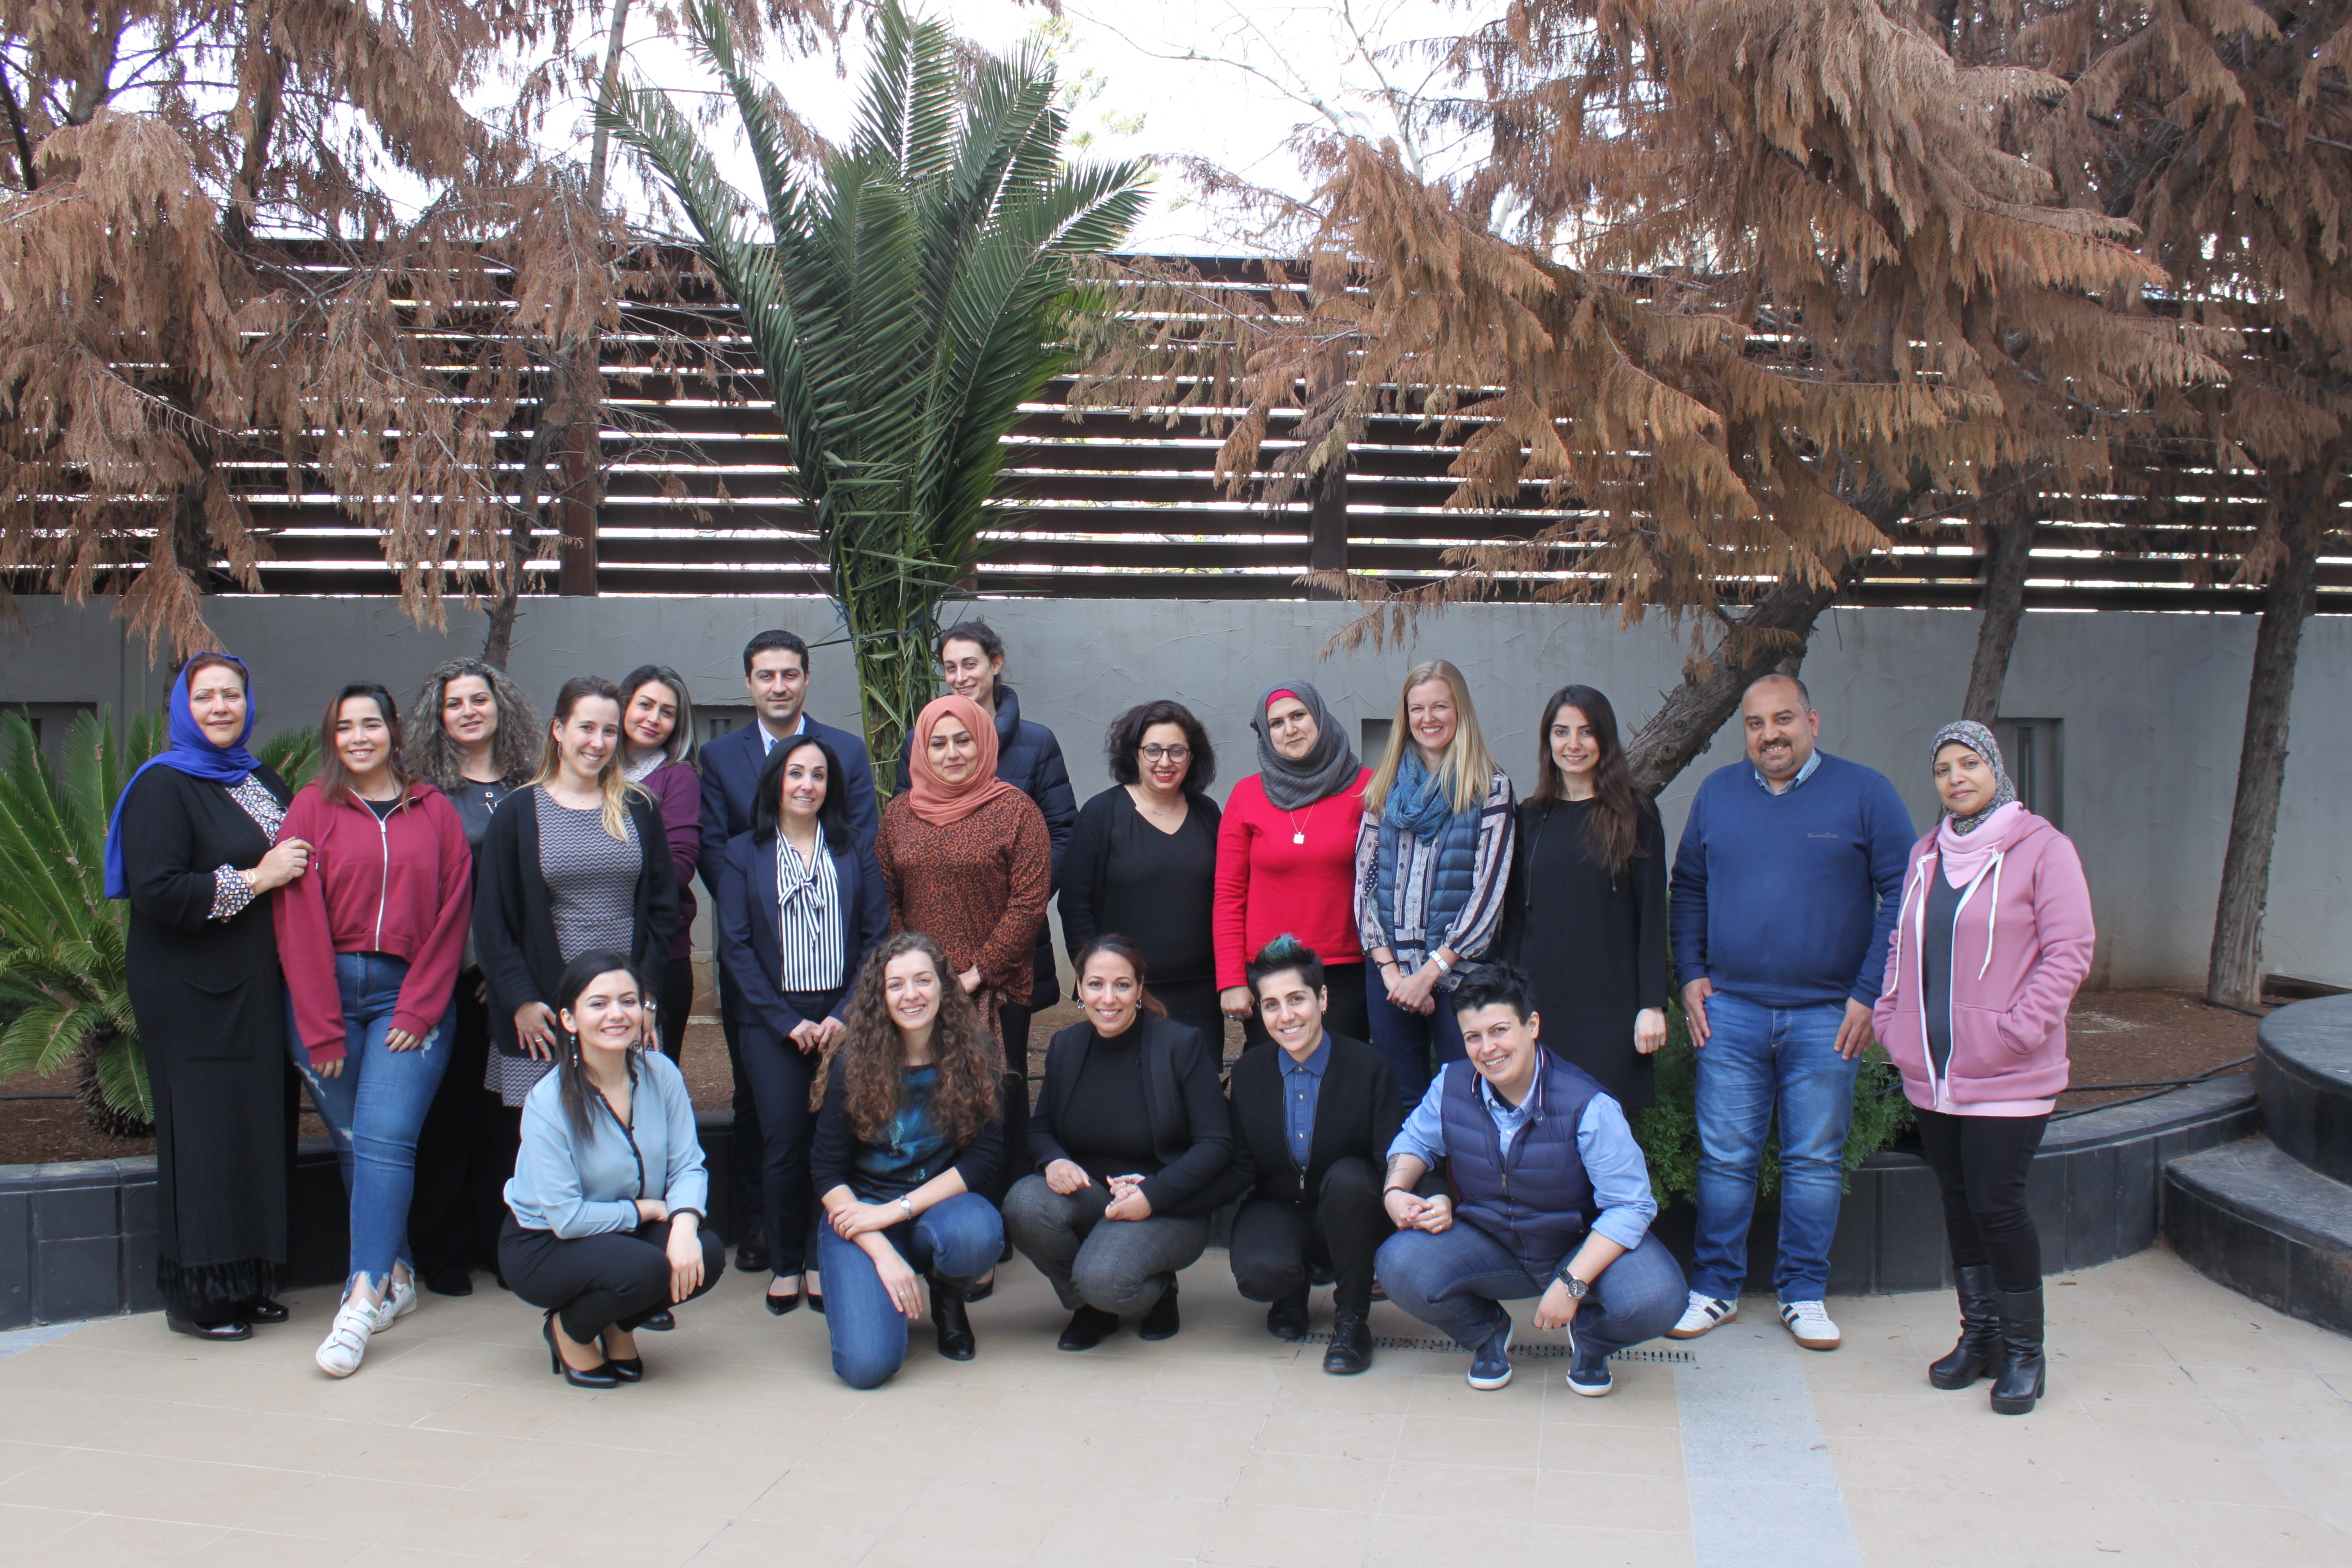 A group photo during MENA convening 2017